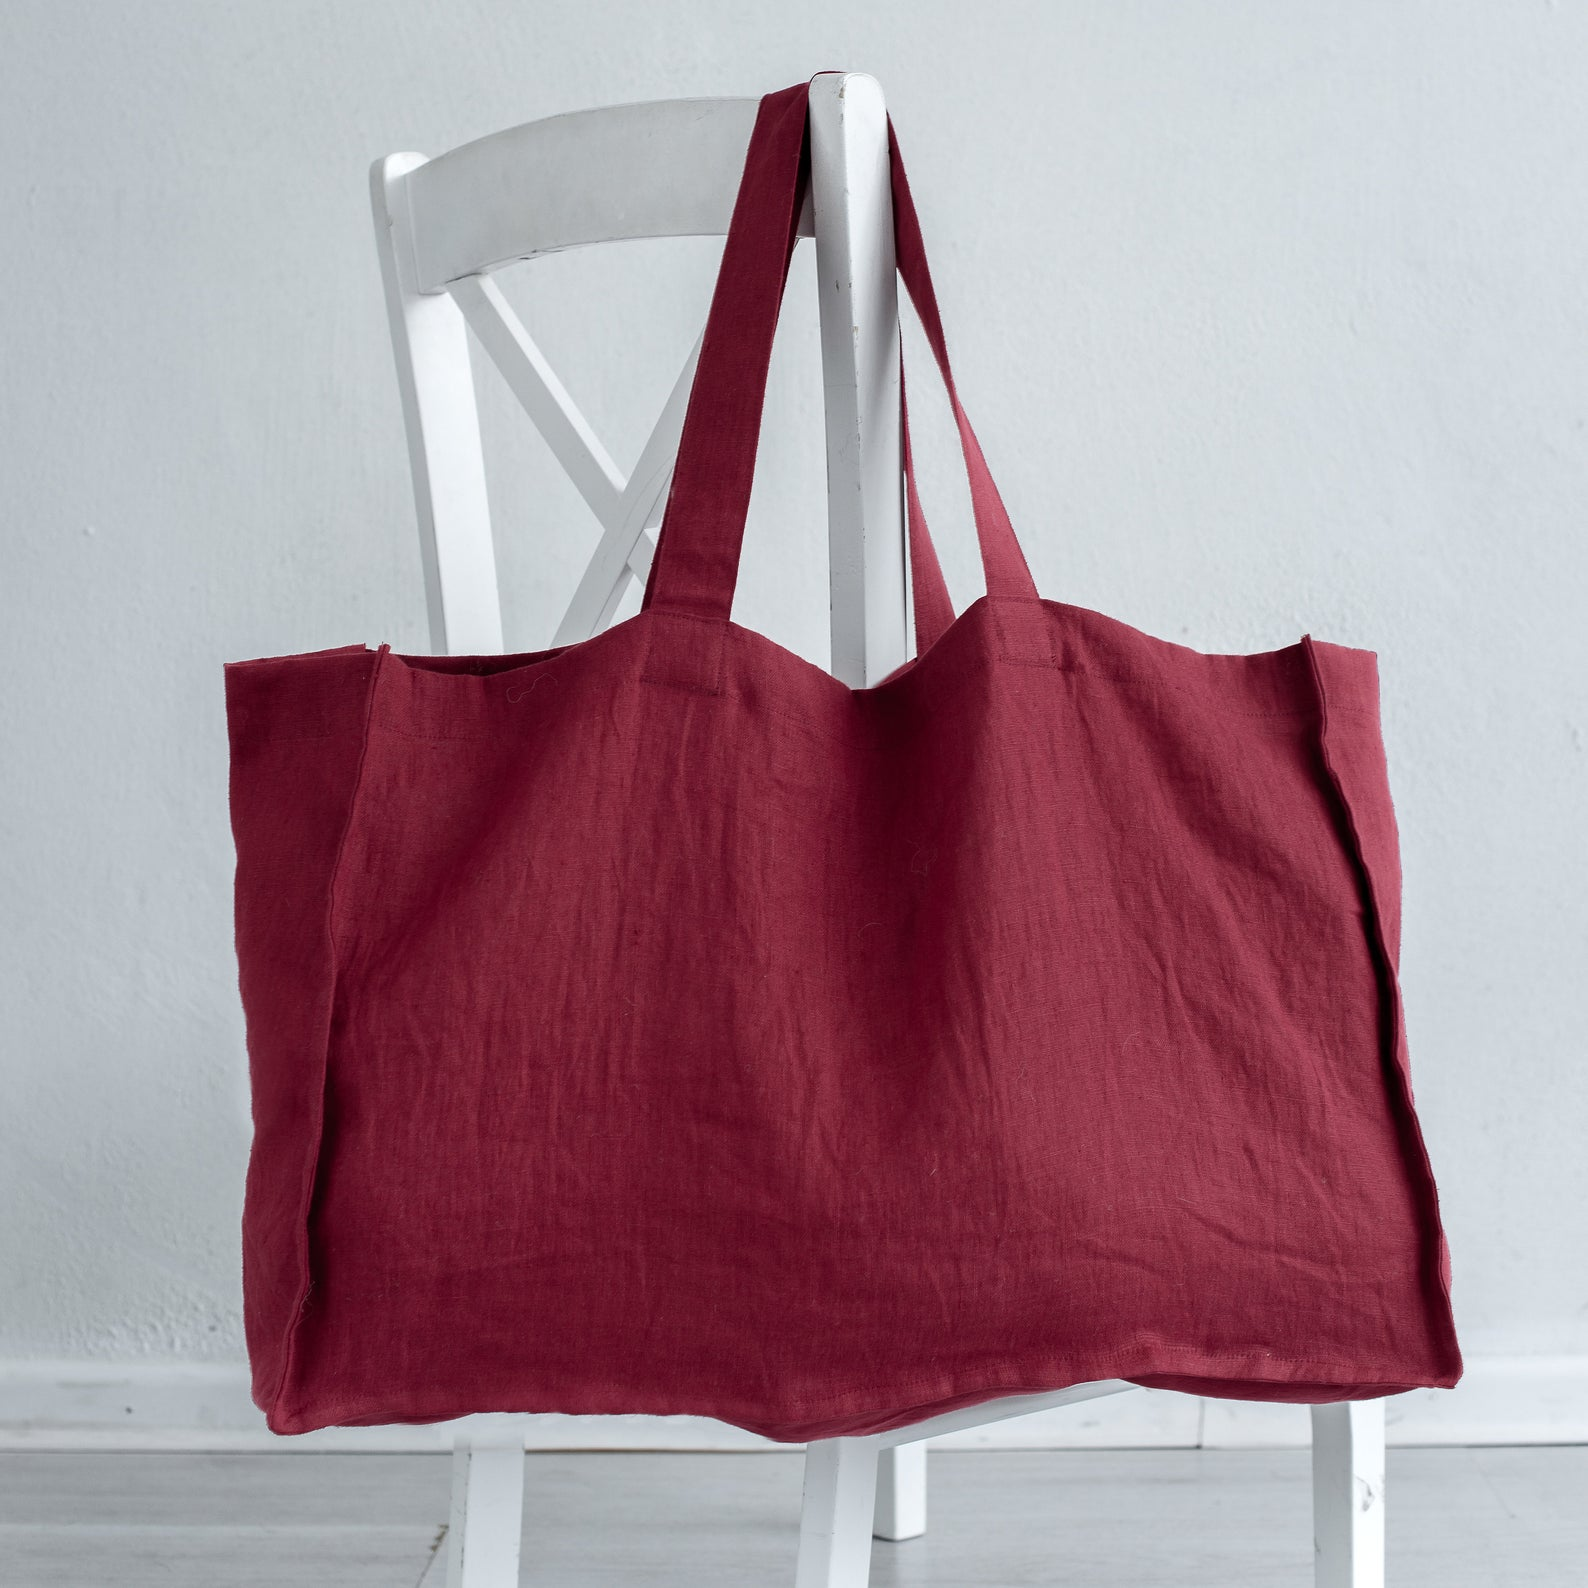 Hidden pockets - Made from Oeko Tex certified European linen in Lithuania, we're loving the luscious raspberry colour of this large tote bag. It also comes in a gorgeous moss green, and 15 other earthy tones. Hand made to order, it's a classic tote to keep on hand for shopping days.